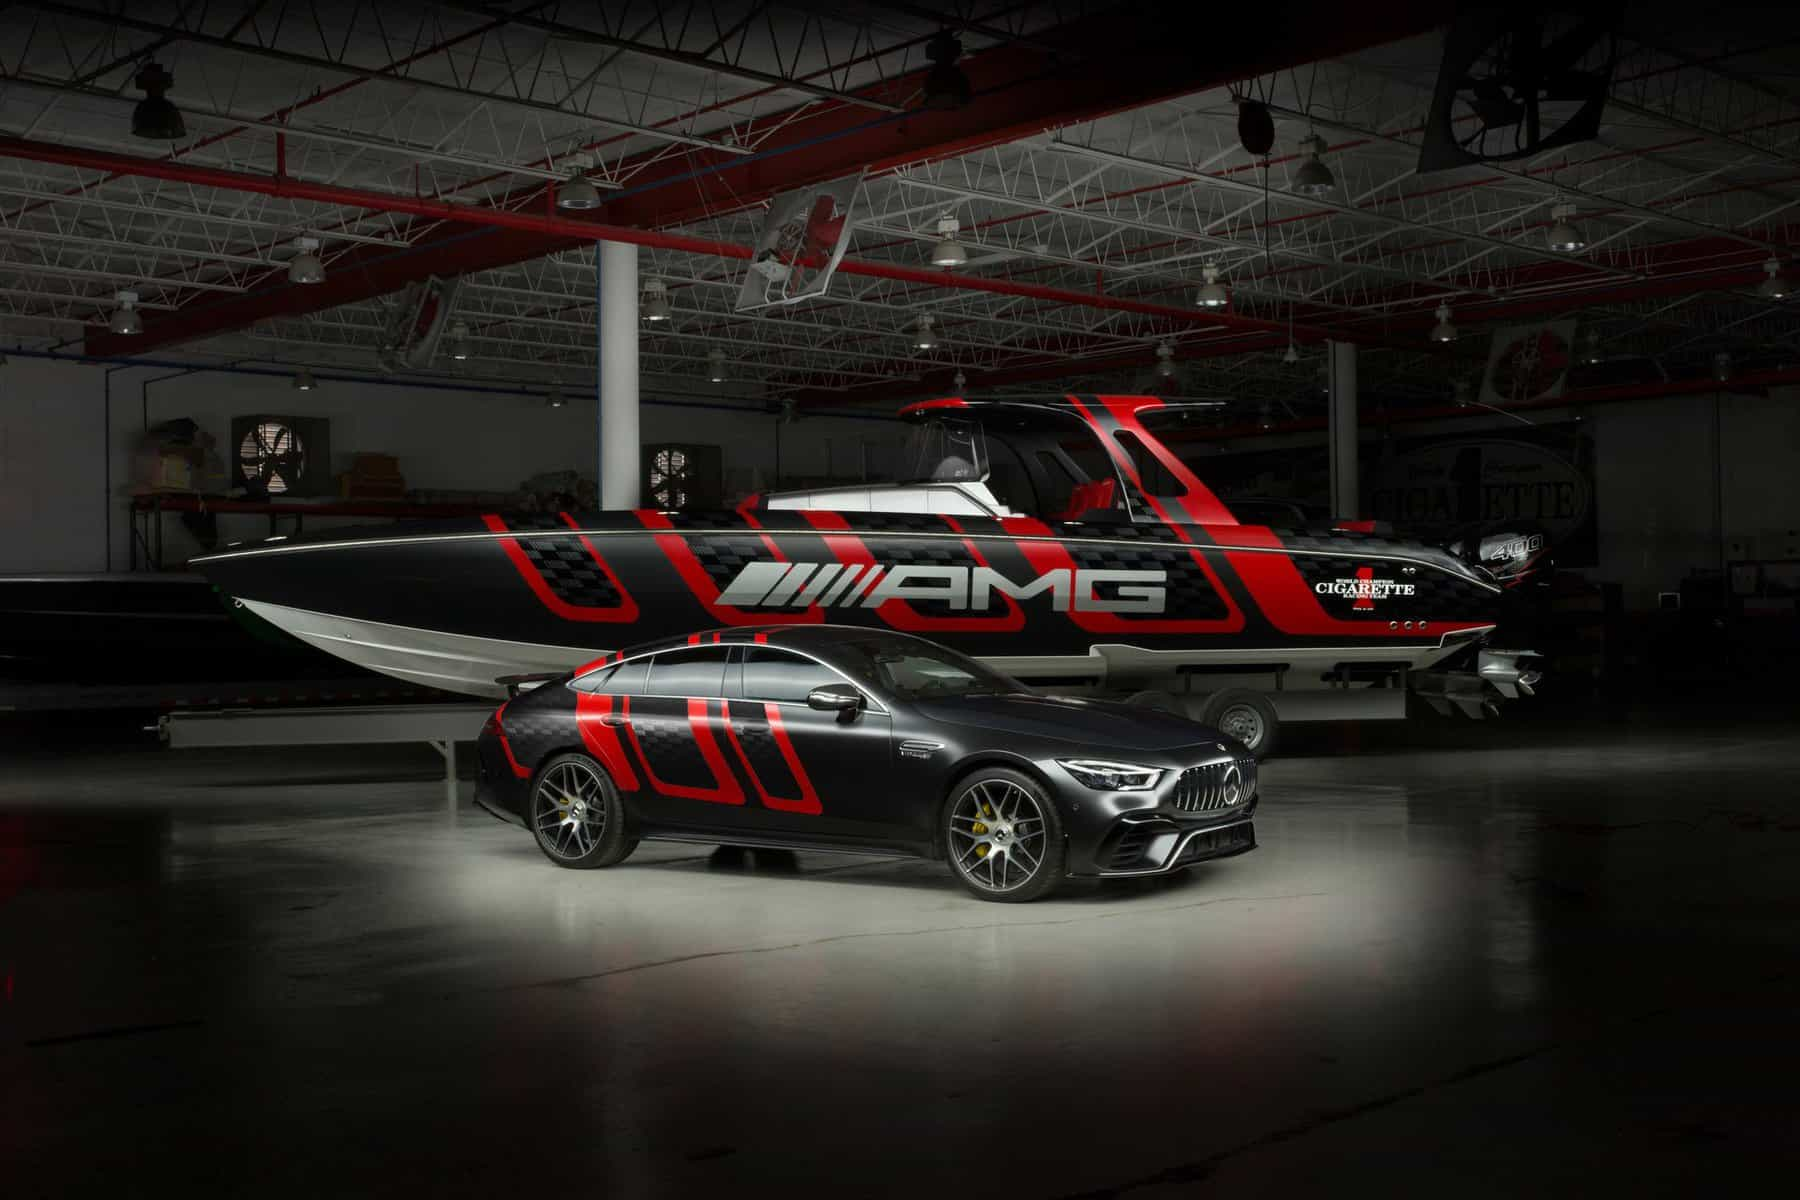 amg-carbon-edition-speedboat-from-mercedes-amg-and-cigarette-racing-3